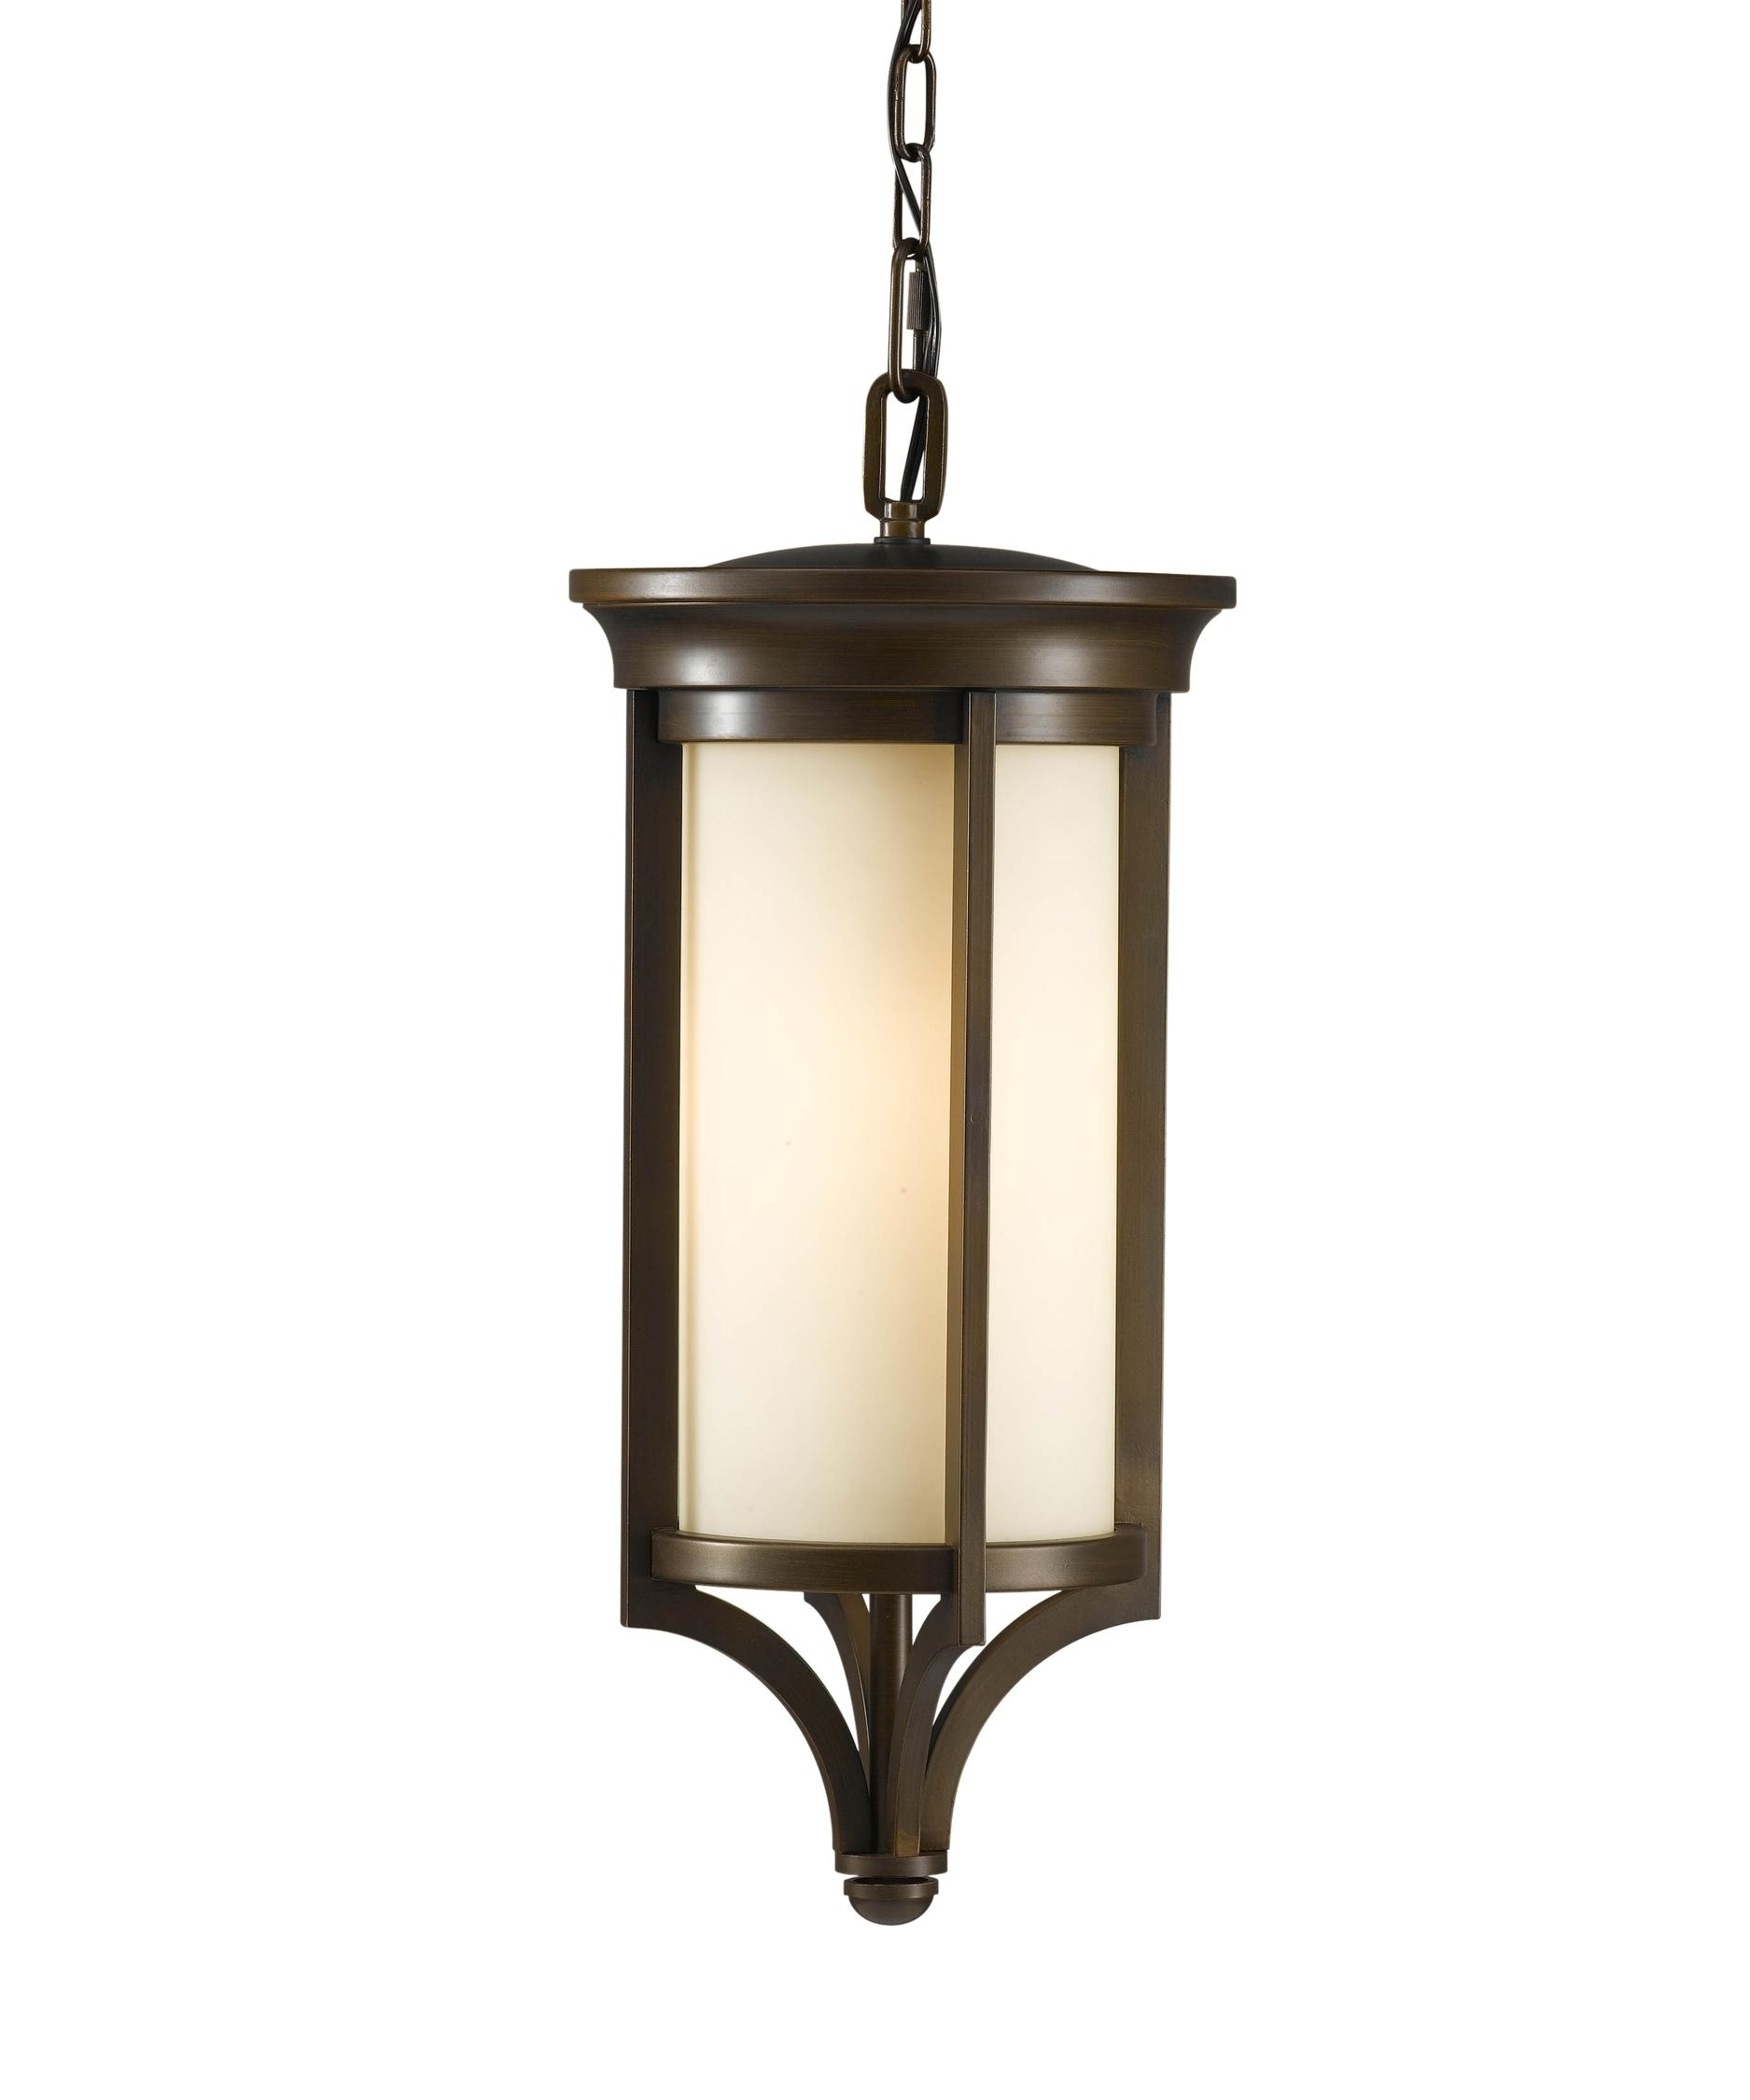 2018 Murray Feiss Ol7511 Merrill 10 Inch Wide 1 Light Outdoor Hanging Inside Outdoor Hanging Electric Lanterns (View 1 of 20)